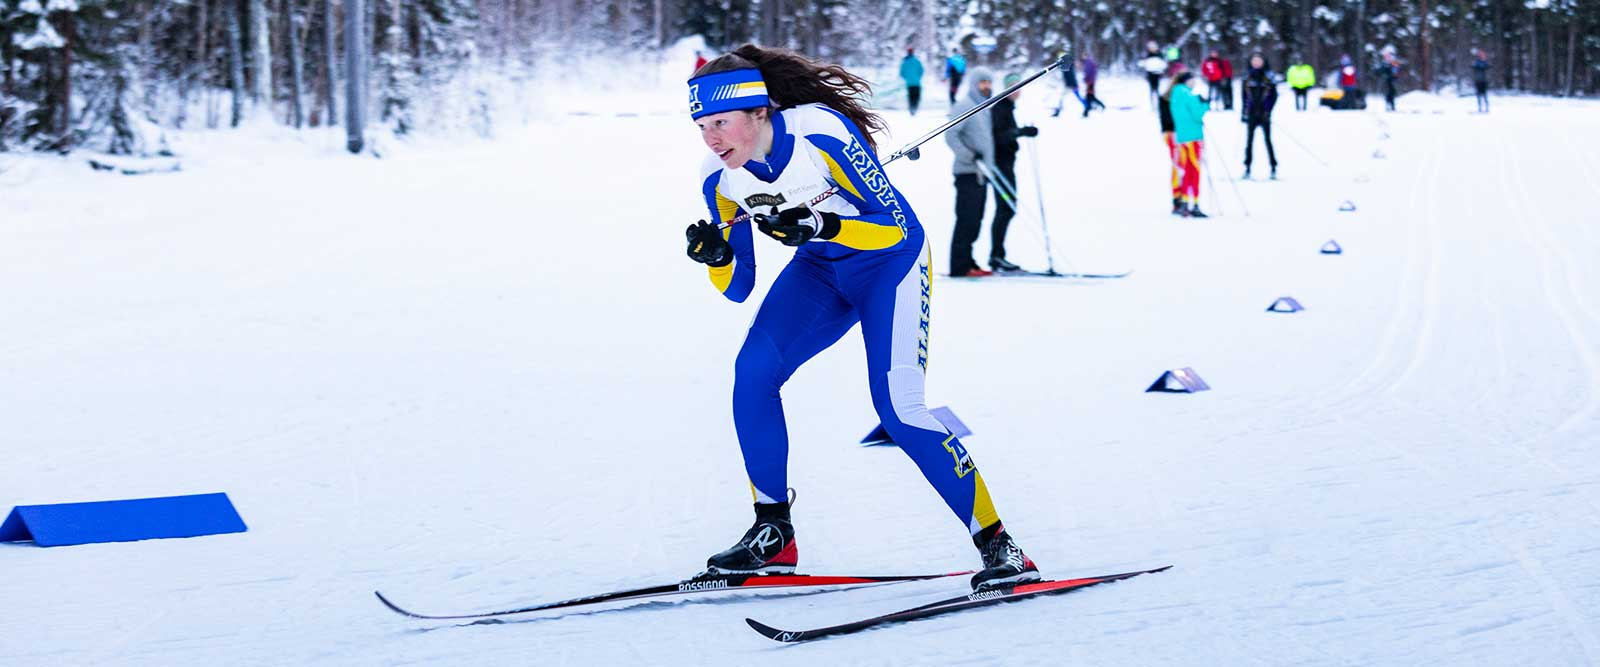 An Alaska Nanooks cross country skier on the Fairbanks campus trails